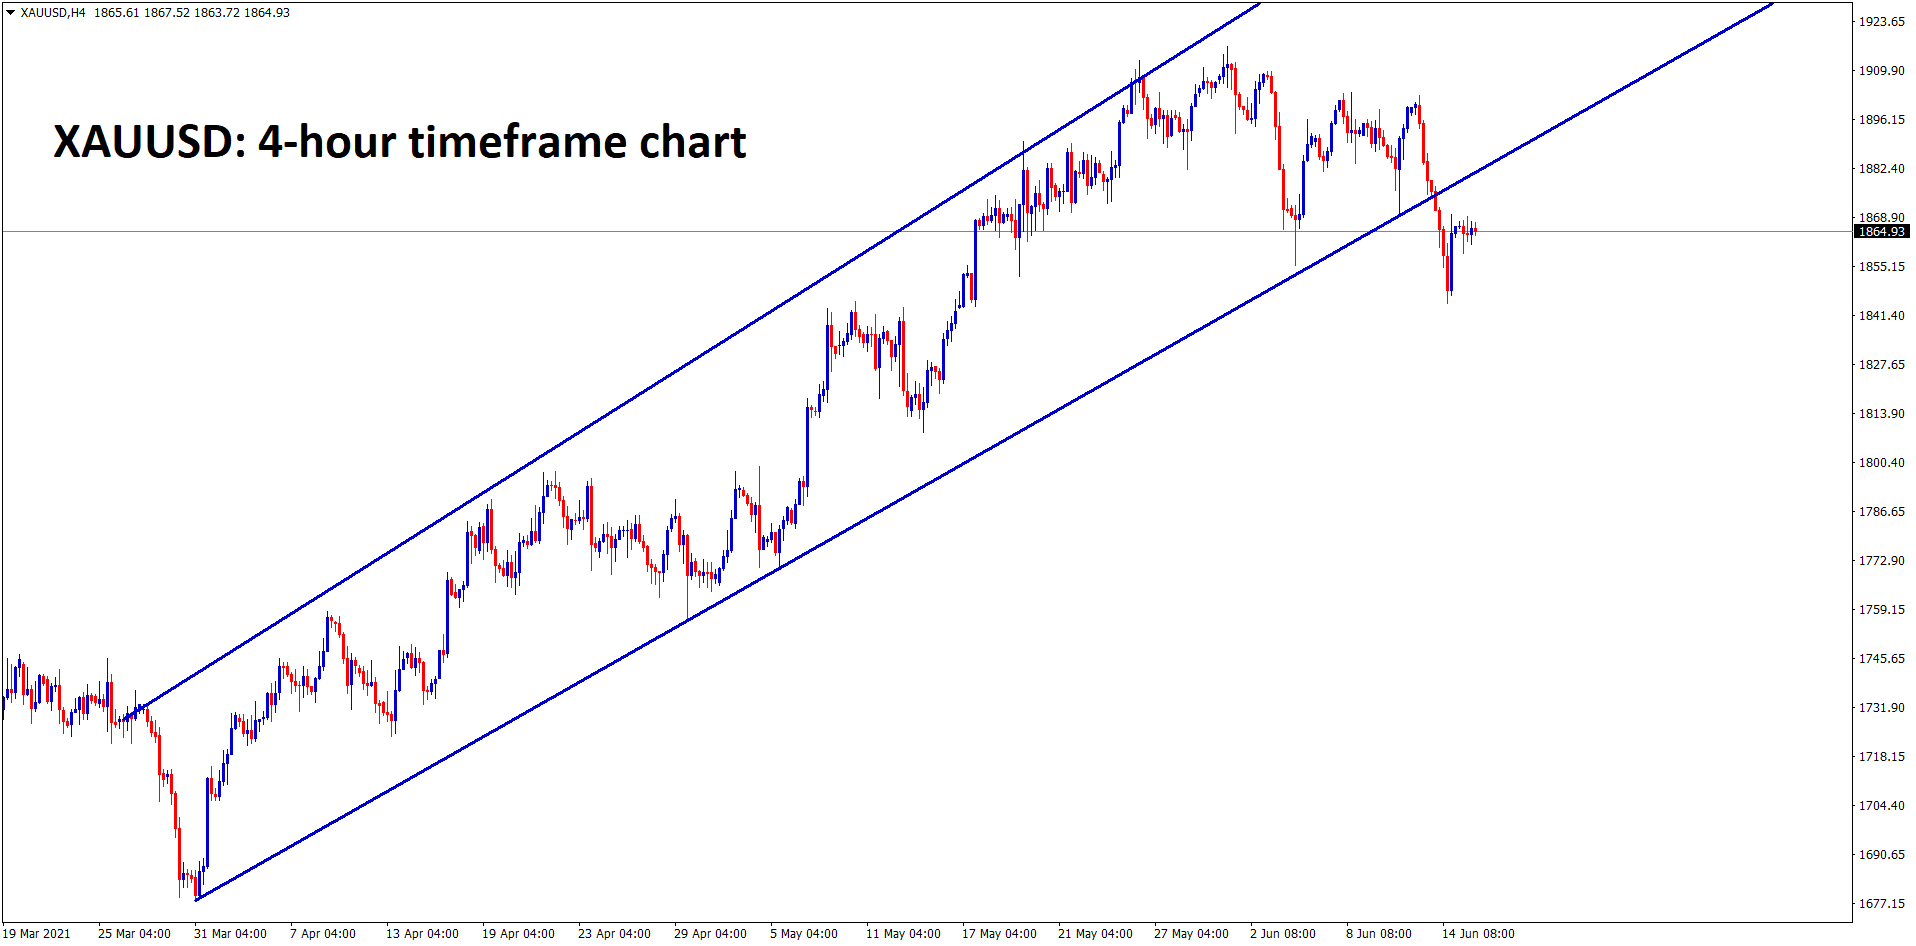 Gold is consolidating after breaking the bottom level of the uptrend line